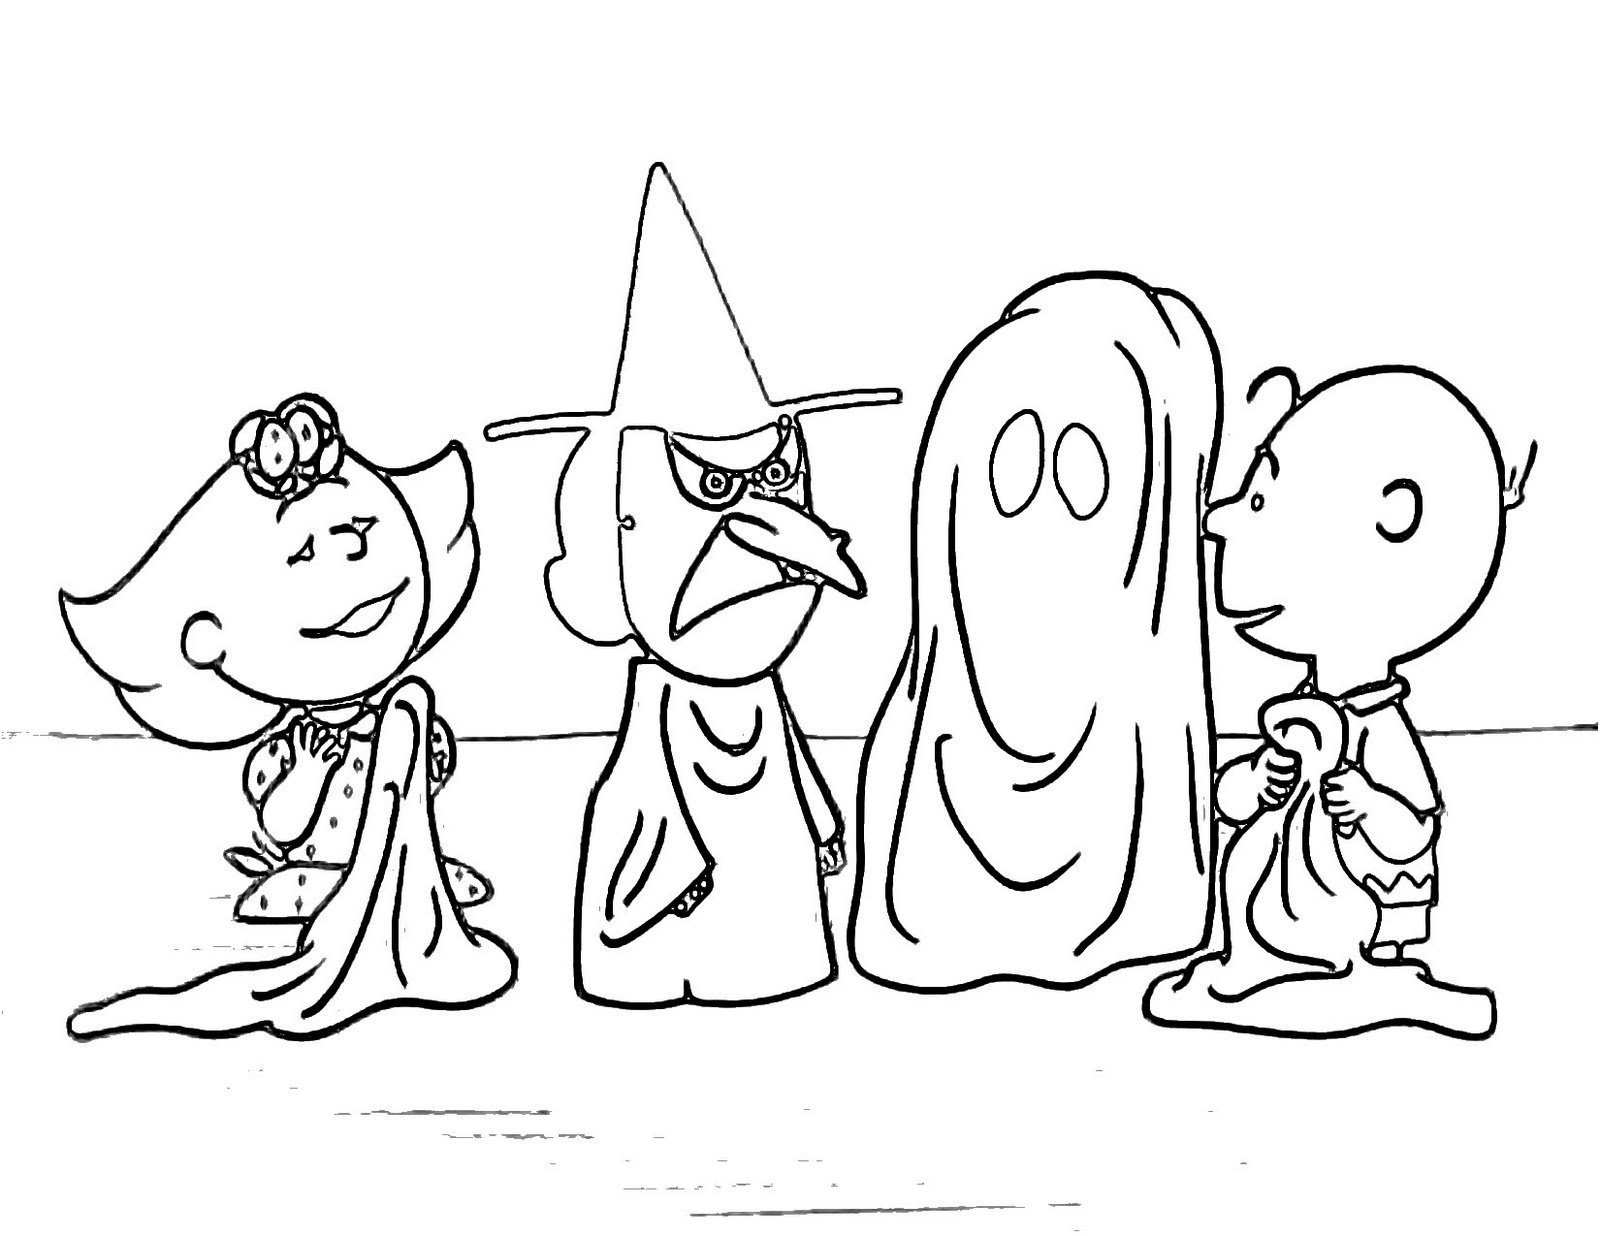 Coloring Pages Frozen Halloween : Halloween coloring pages